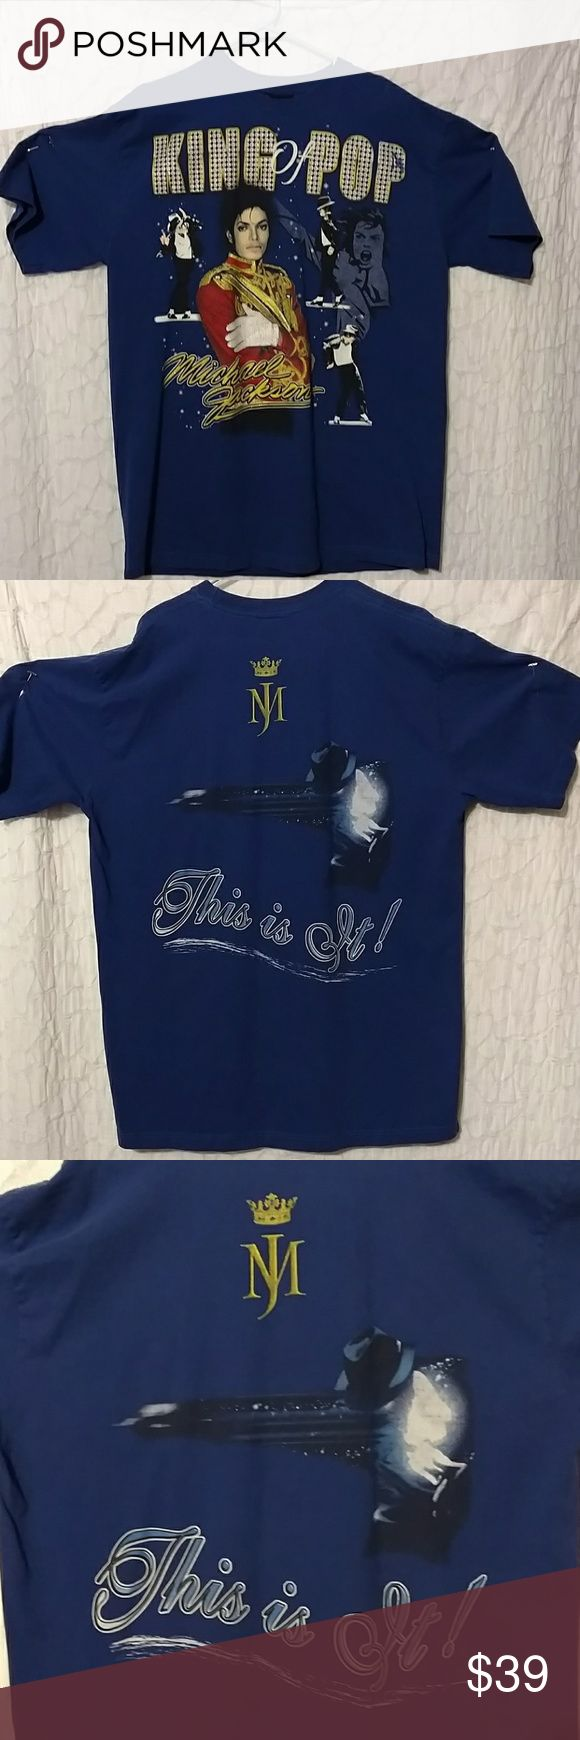 """Michael Jackson """"This is It"""" Tour T-shirt Blue """"King of Pop""""  (""""This is It""""  Tour) Concert T-shirt.  Size 2x (more like a 1x)  Has graphics on front & back.  Really cool shirt.  That's right """"Who's BAD"""" ?  Great collectors item.  Like new condition. True Cotton Tops Tees - Long Sleeve"""